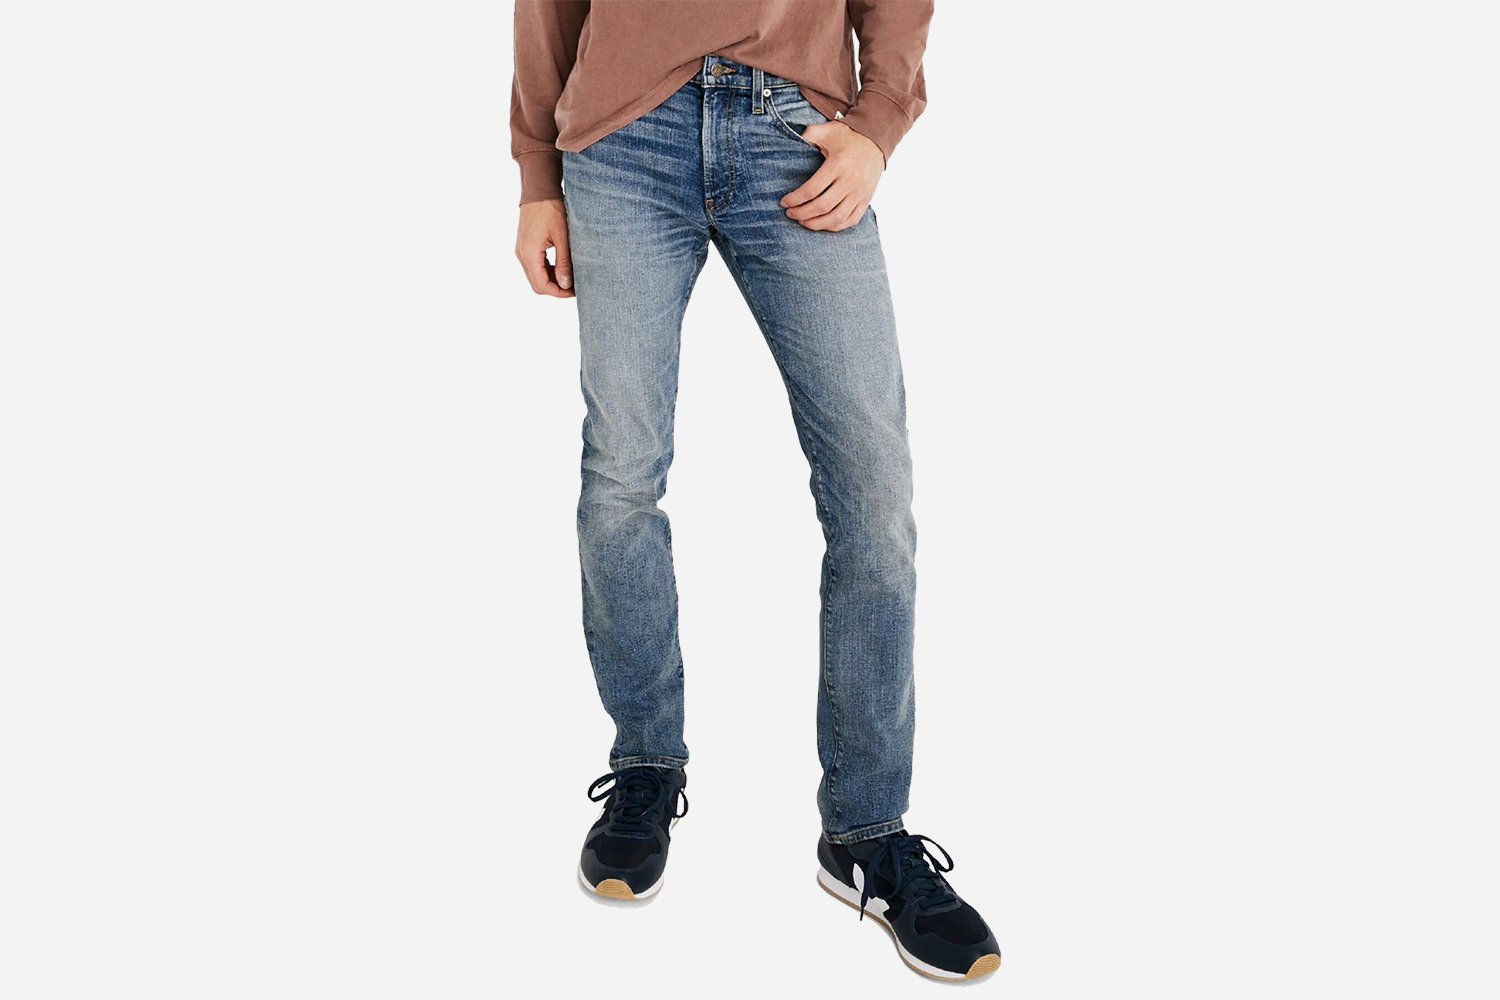 Madewell Men's Slim Fit Jeans in Baywood Wash